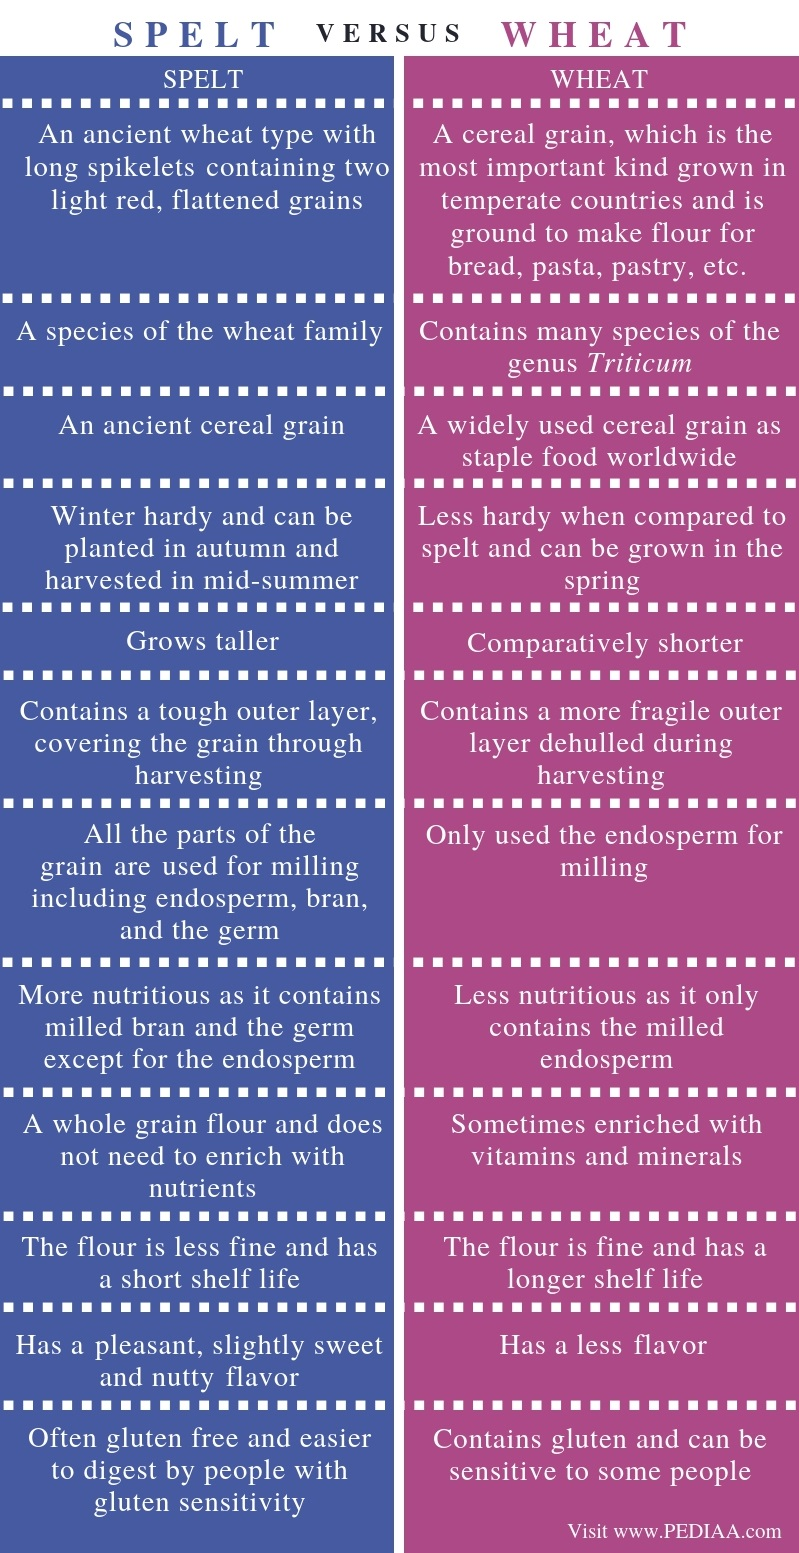 Difference Between Spelt and Wheat - Comparison Summary